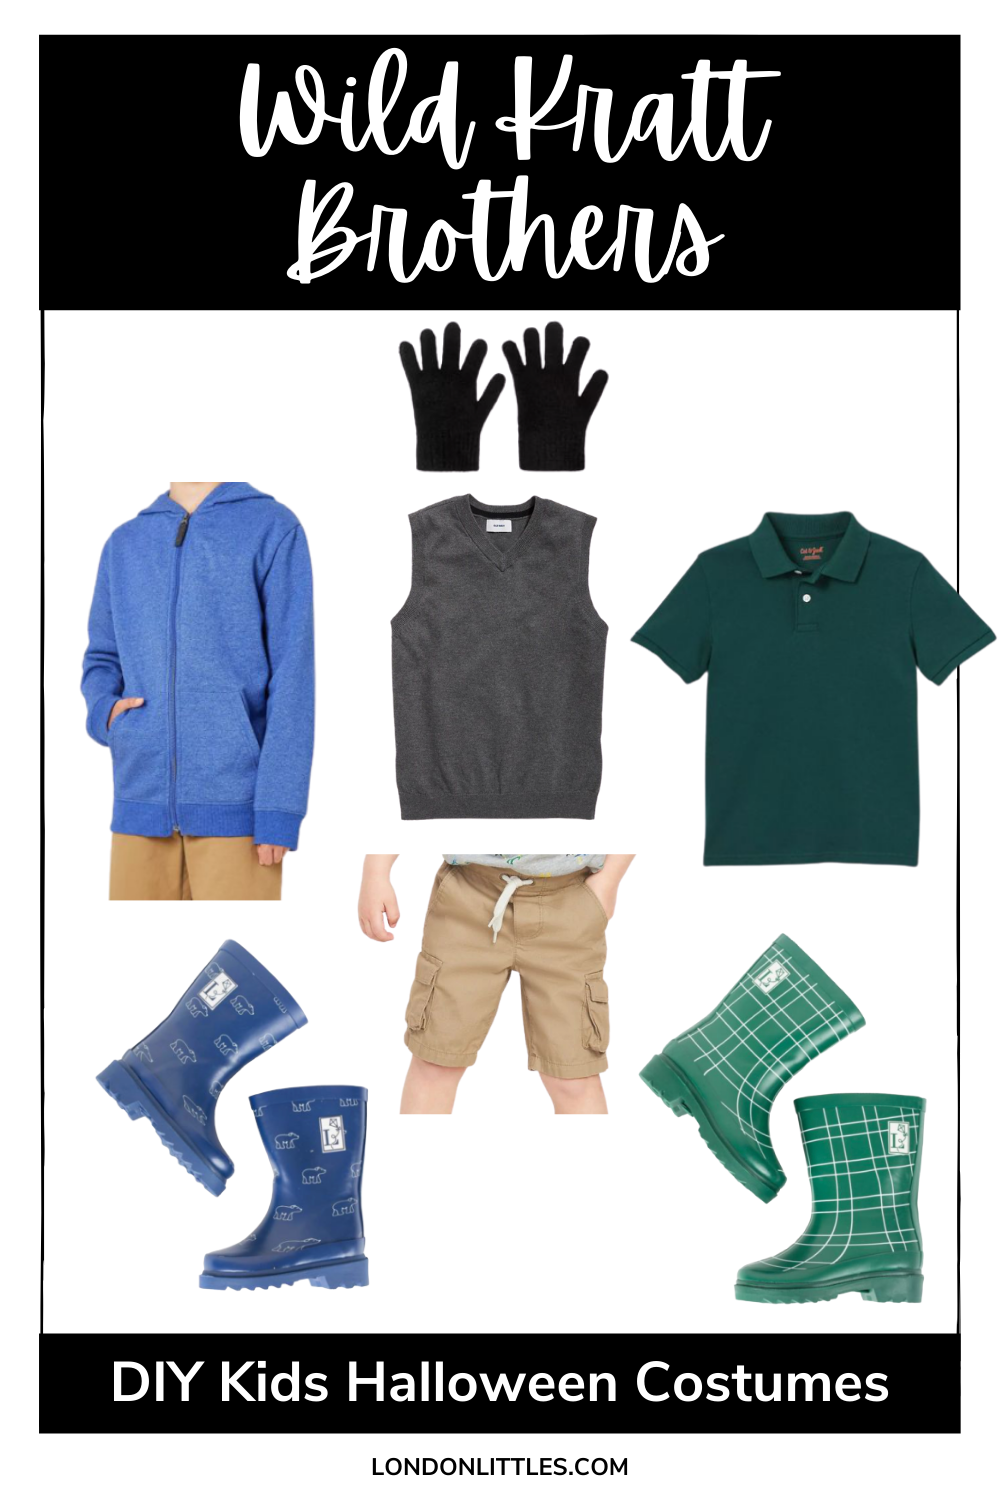 diy kids halloween costumes wild kratt brothers